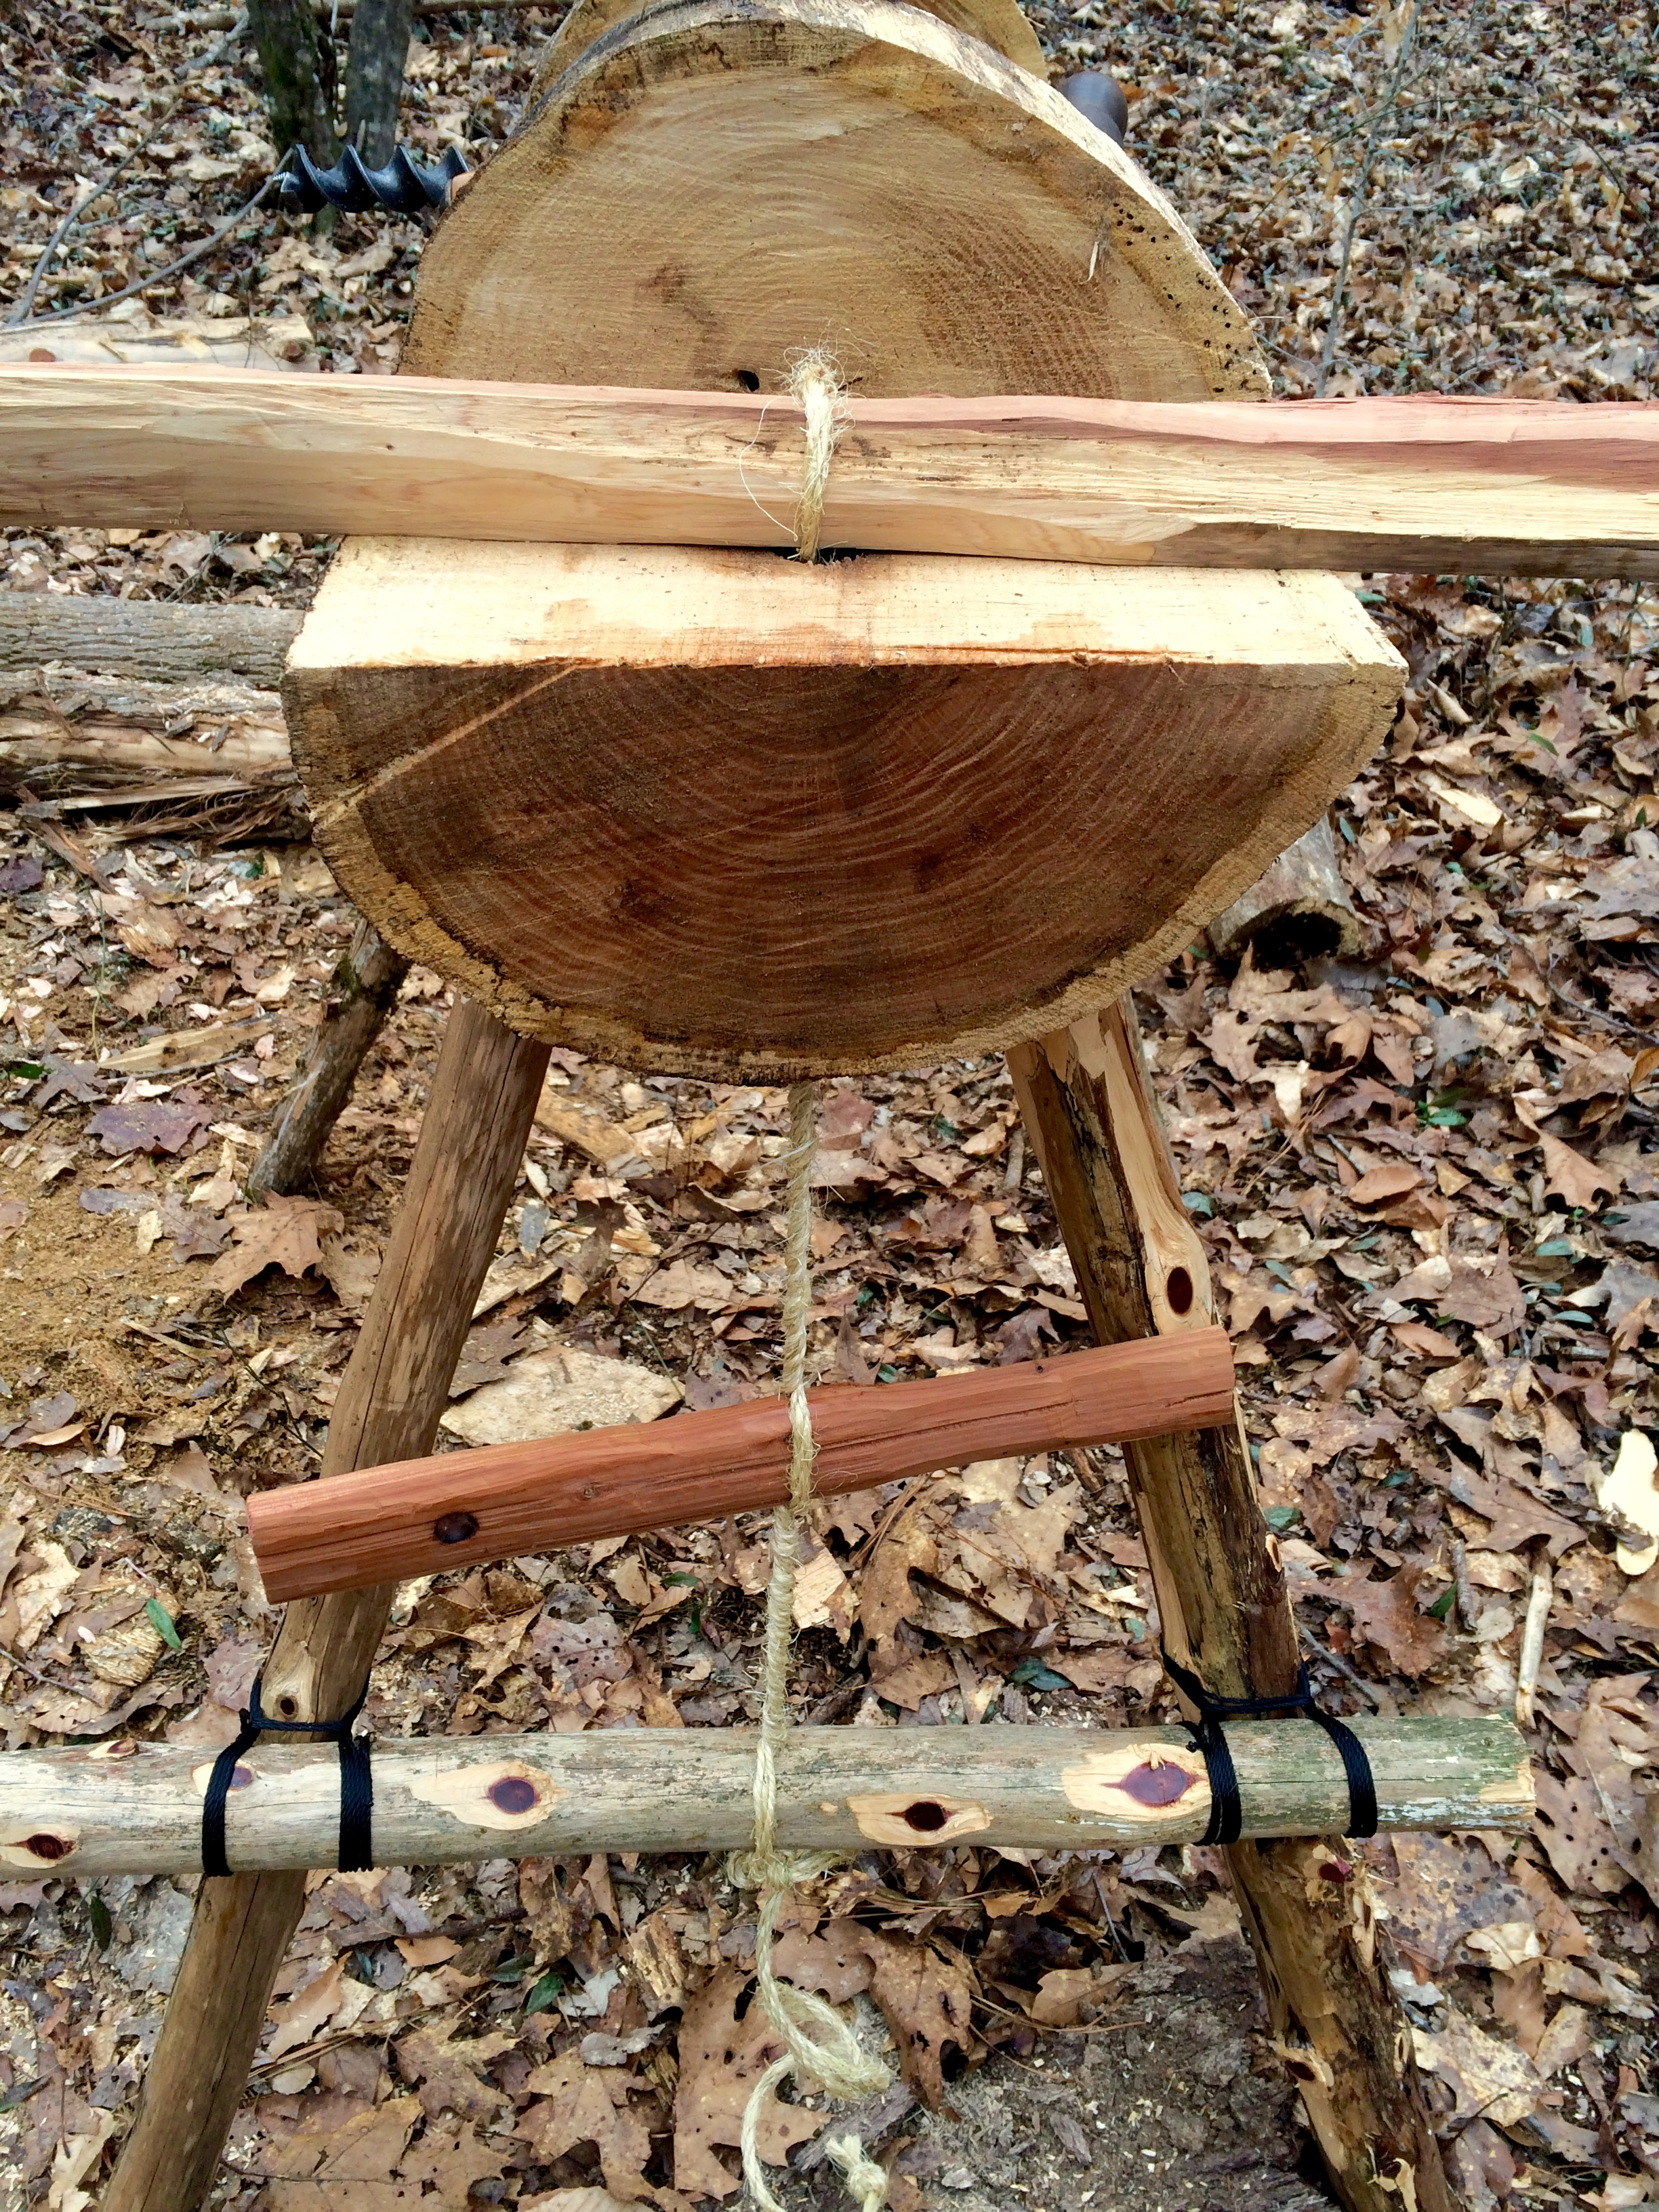 ... in How to Build a Carving Bench from a Log (Rope Vise Plans Included